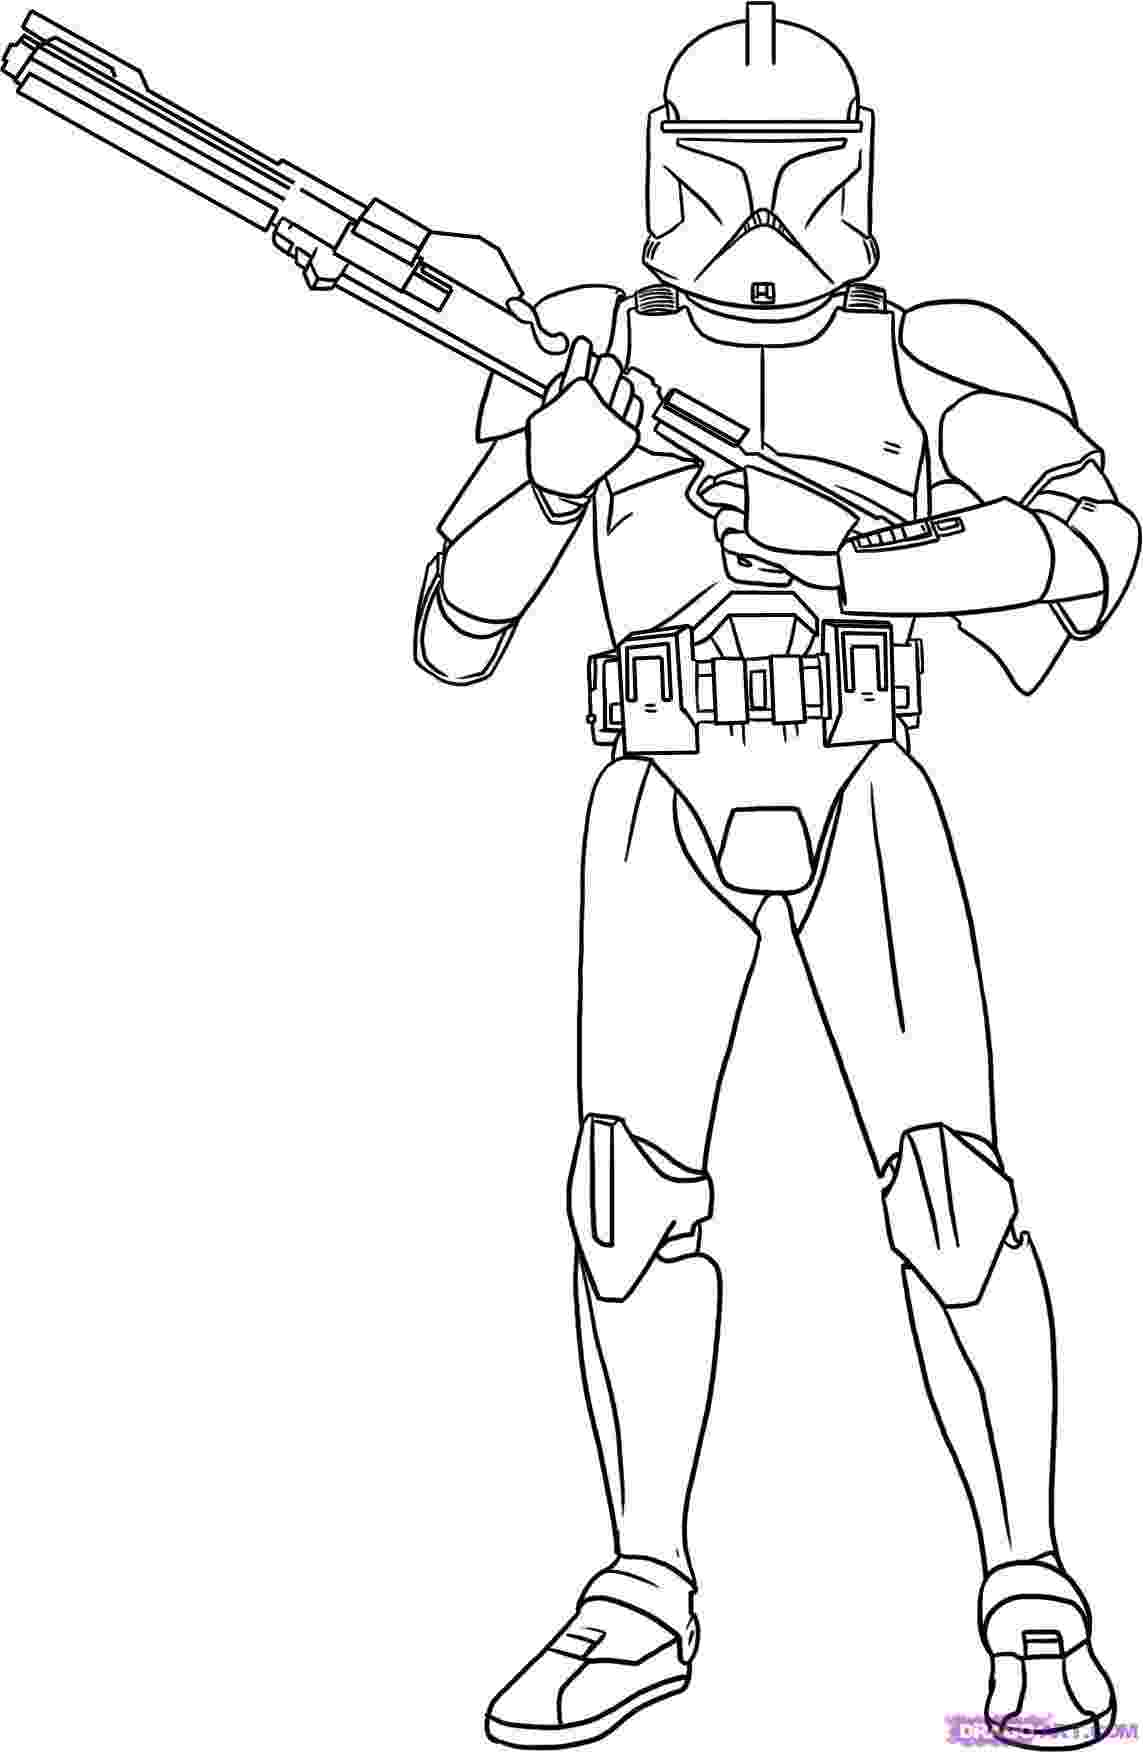 star wars the clone wars coloring pages to print free printable star wars coloring pages free printable coloring pages the clone star wars print to wars